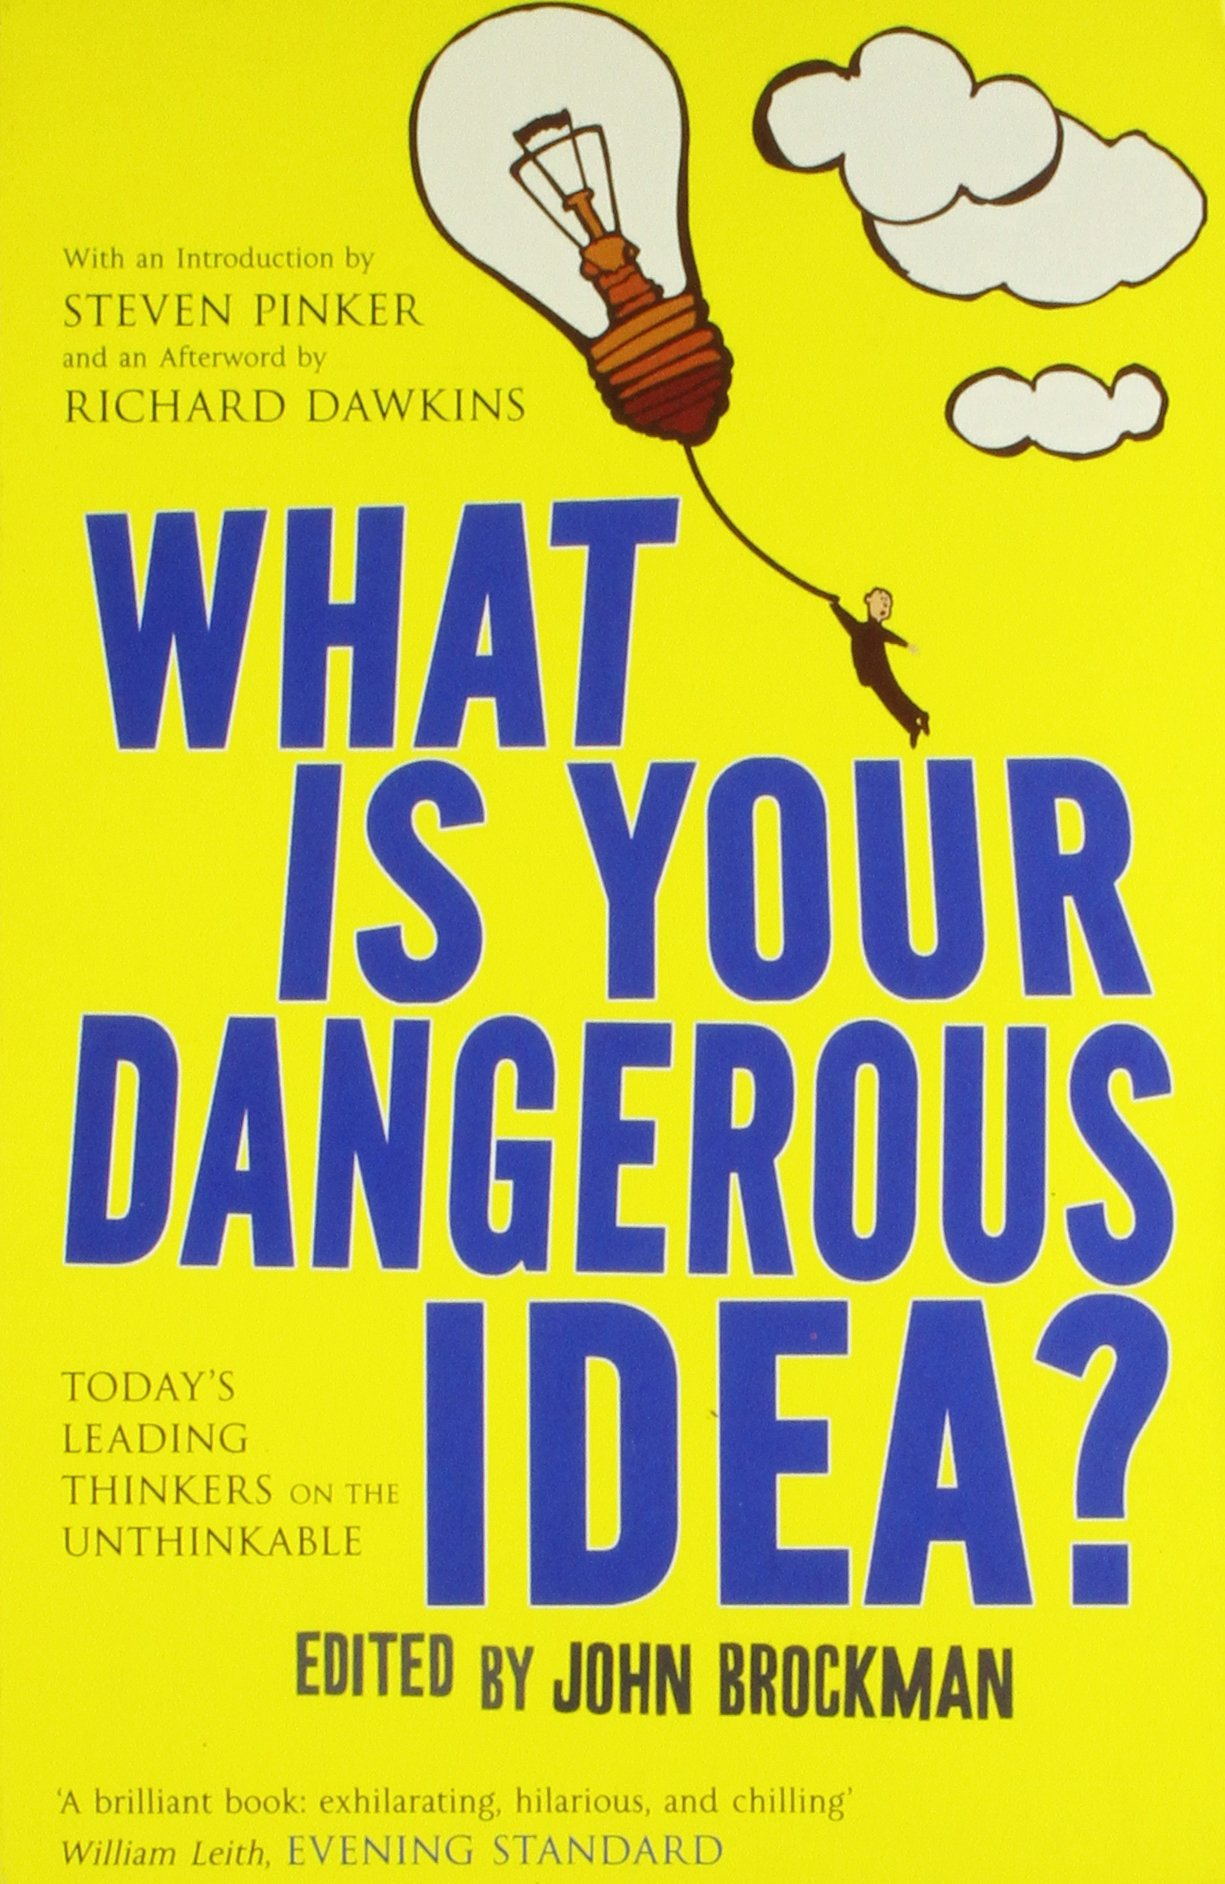 what is an idea book